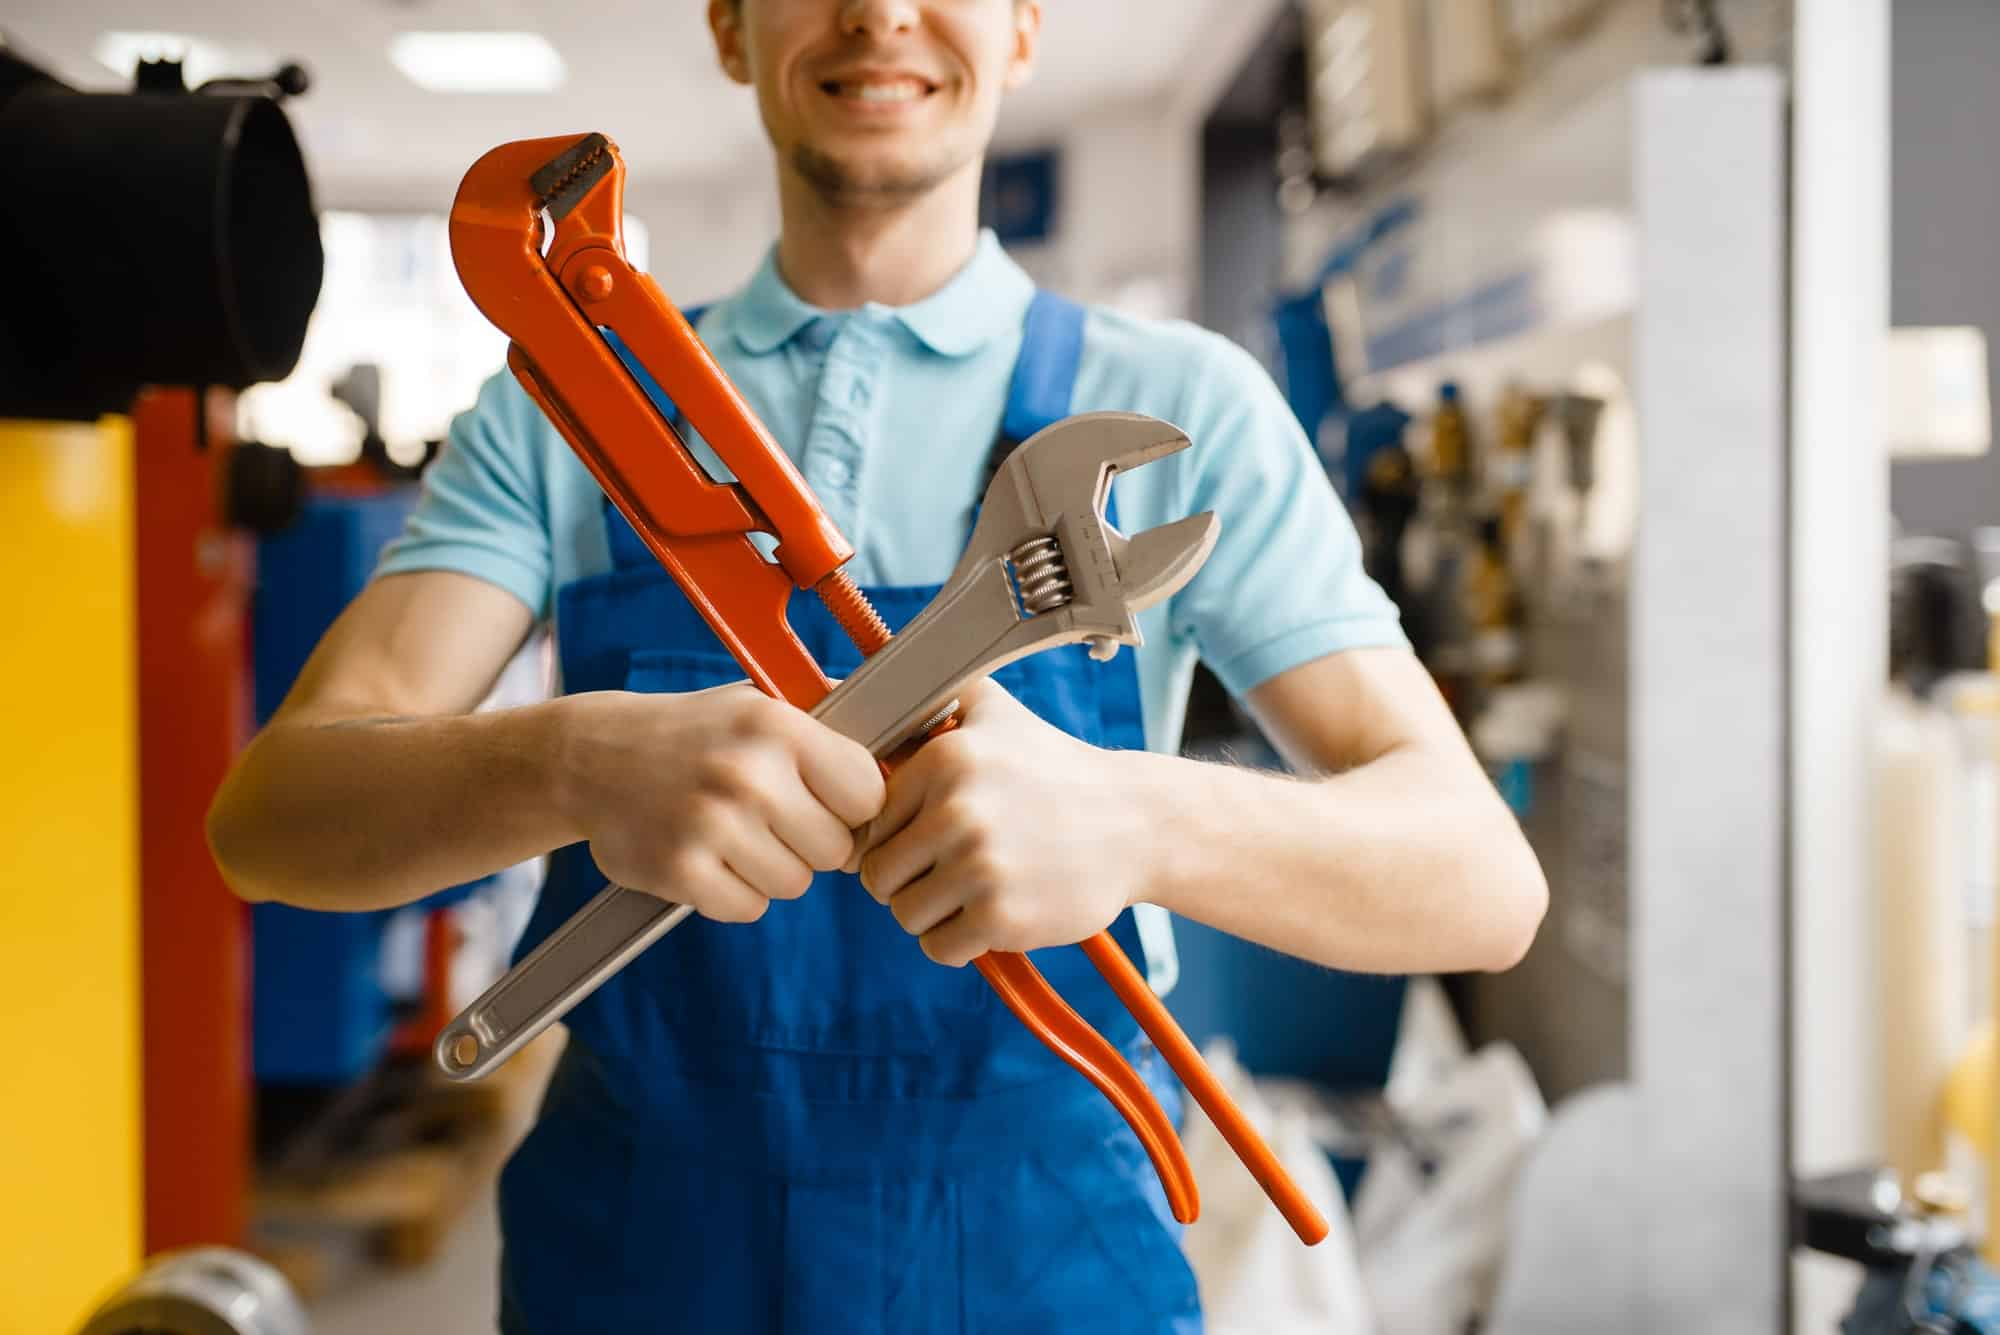 Plumber poses with pipe wrenches, plumbering store